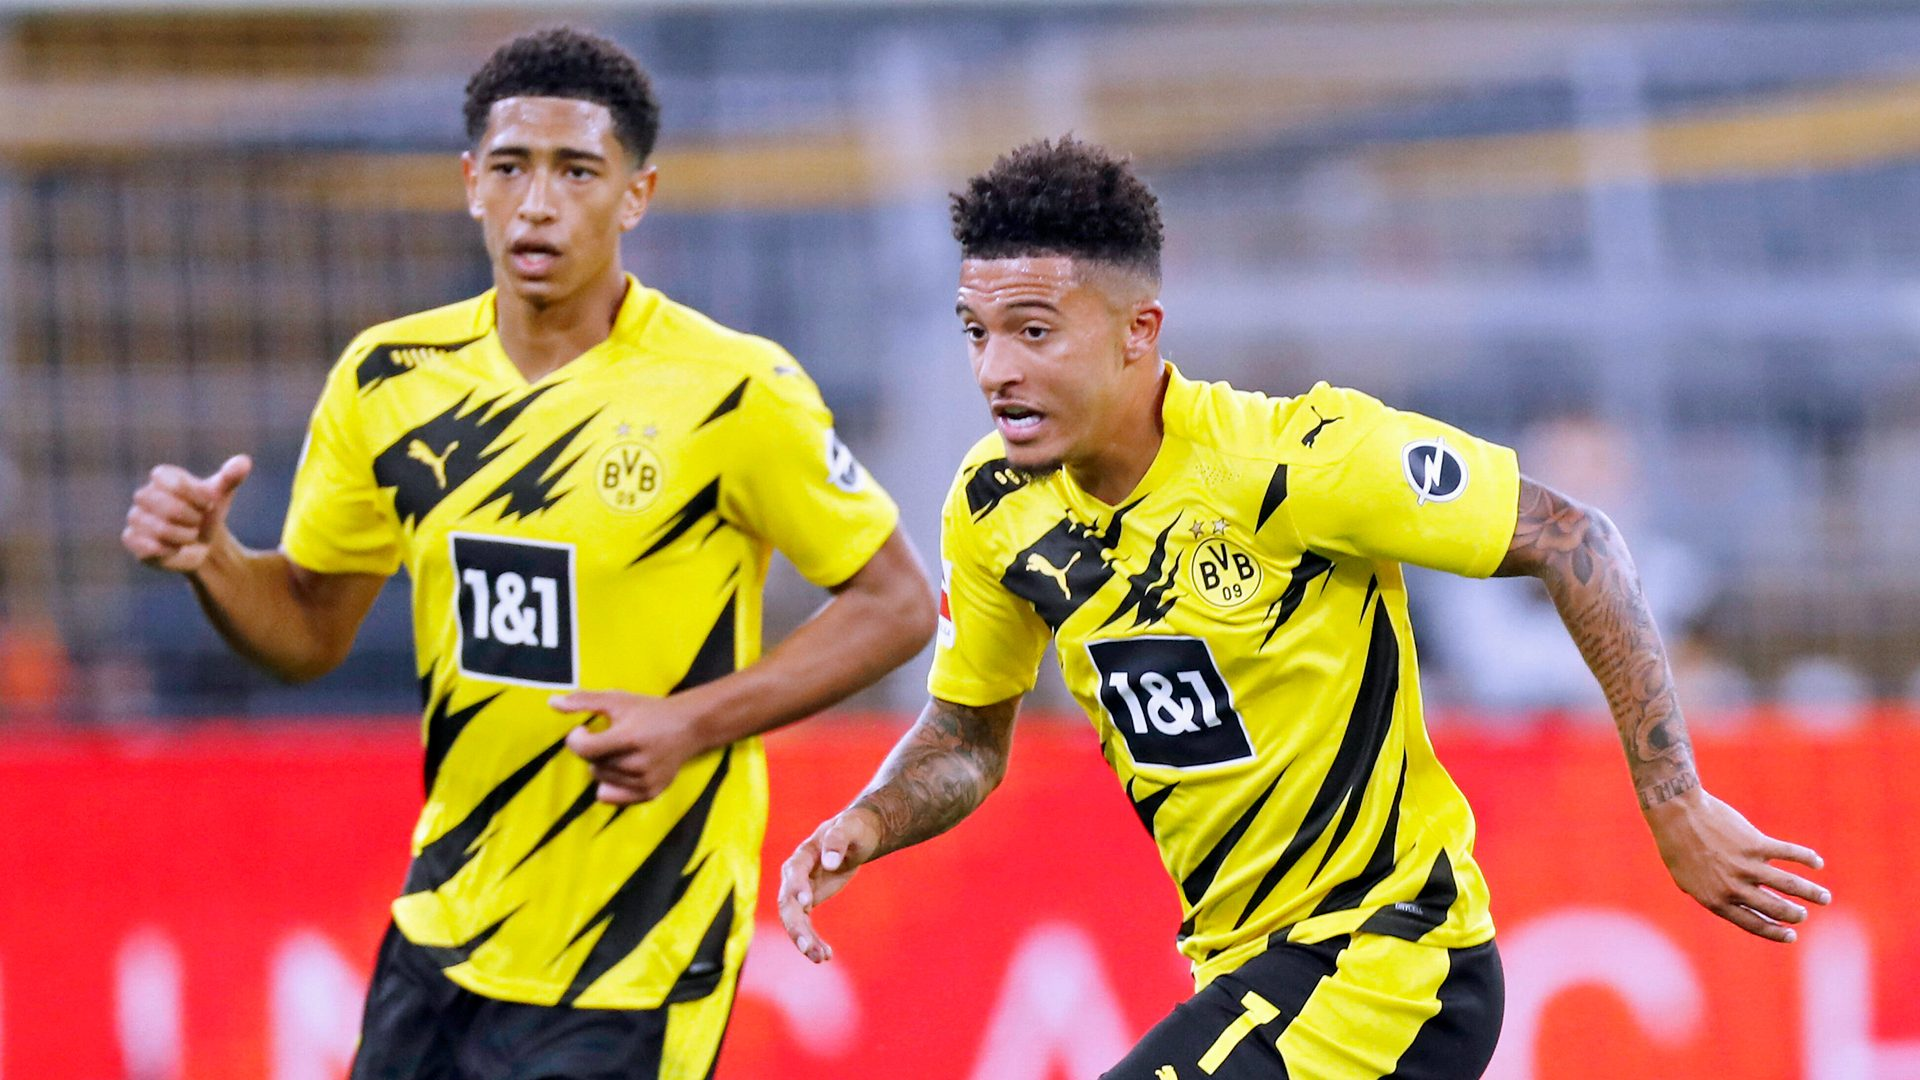 England's young lions in Bundesliga